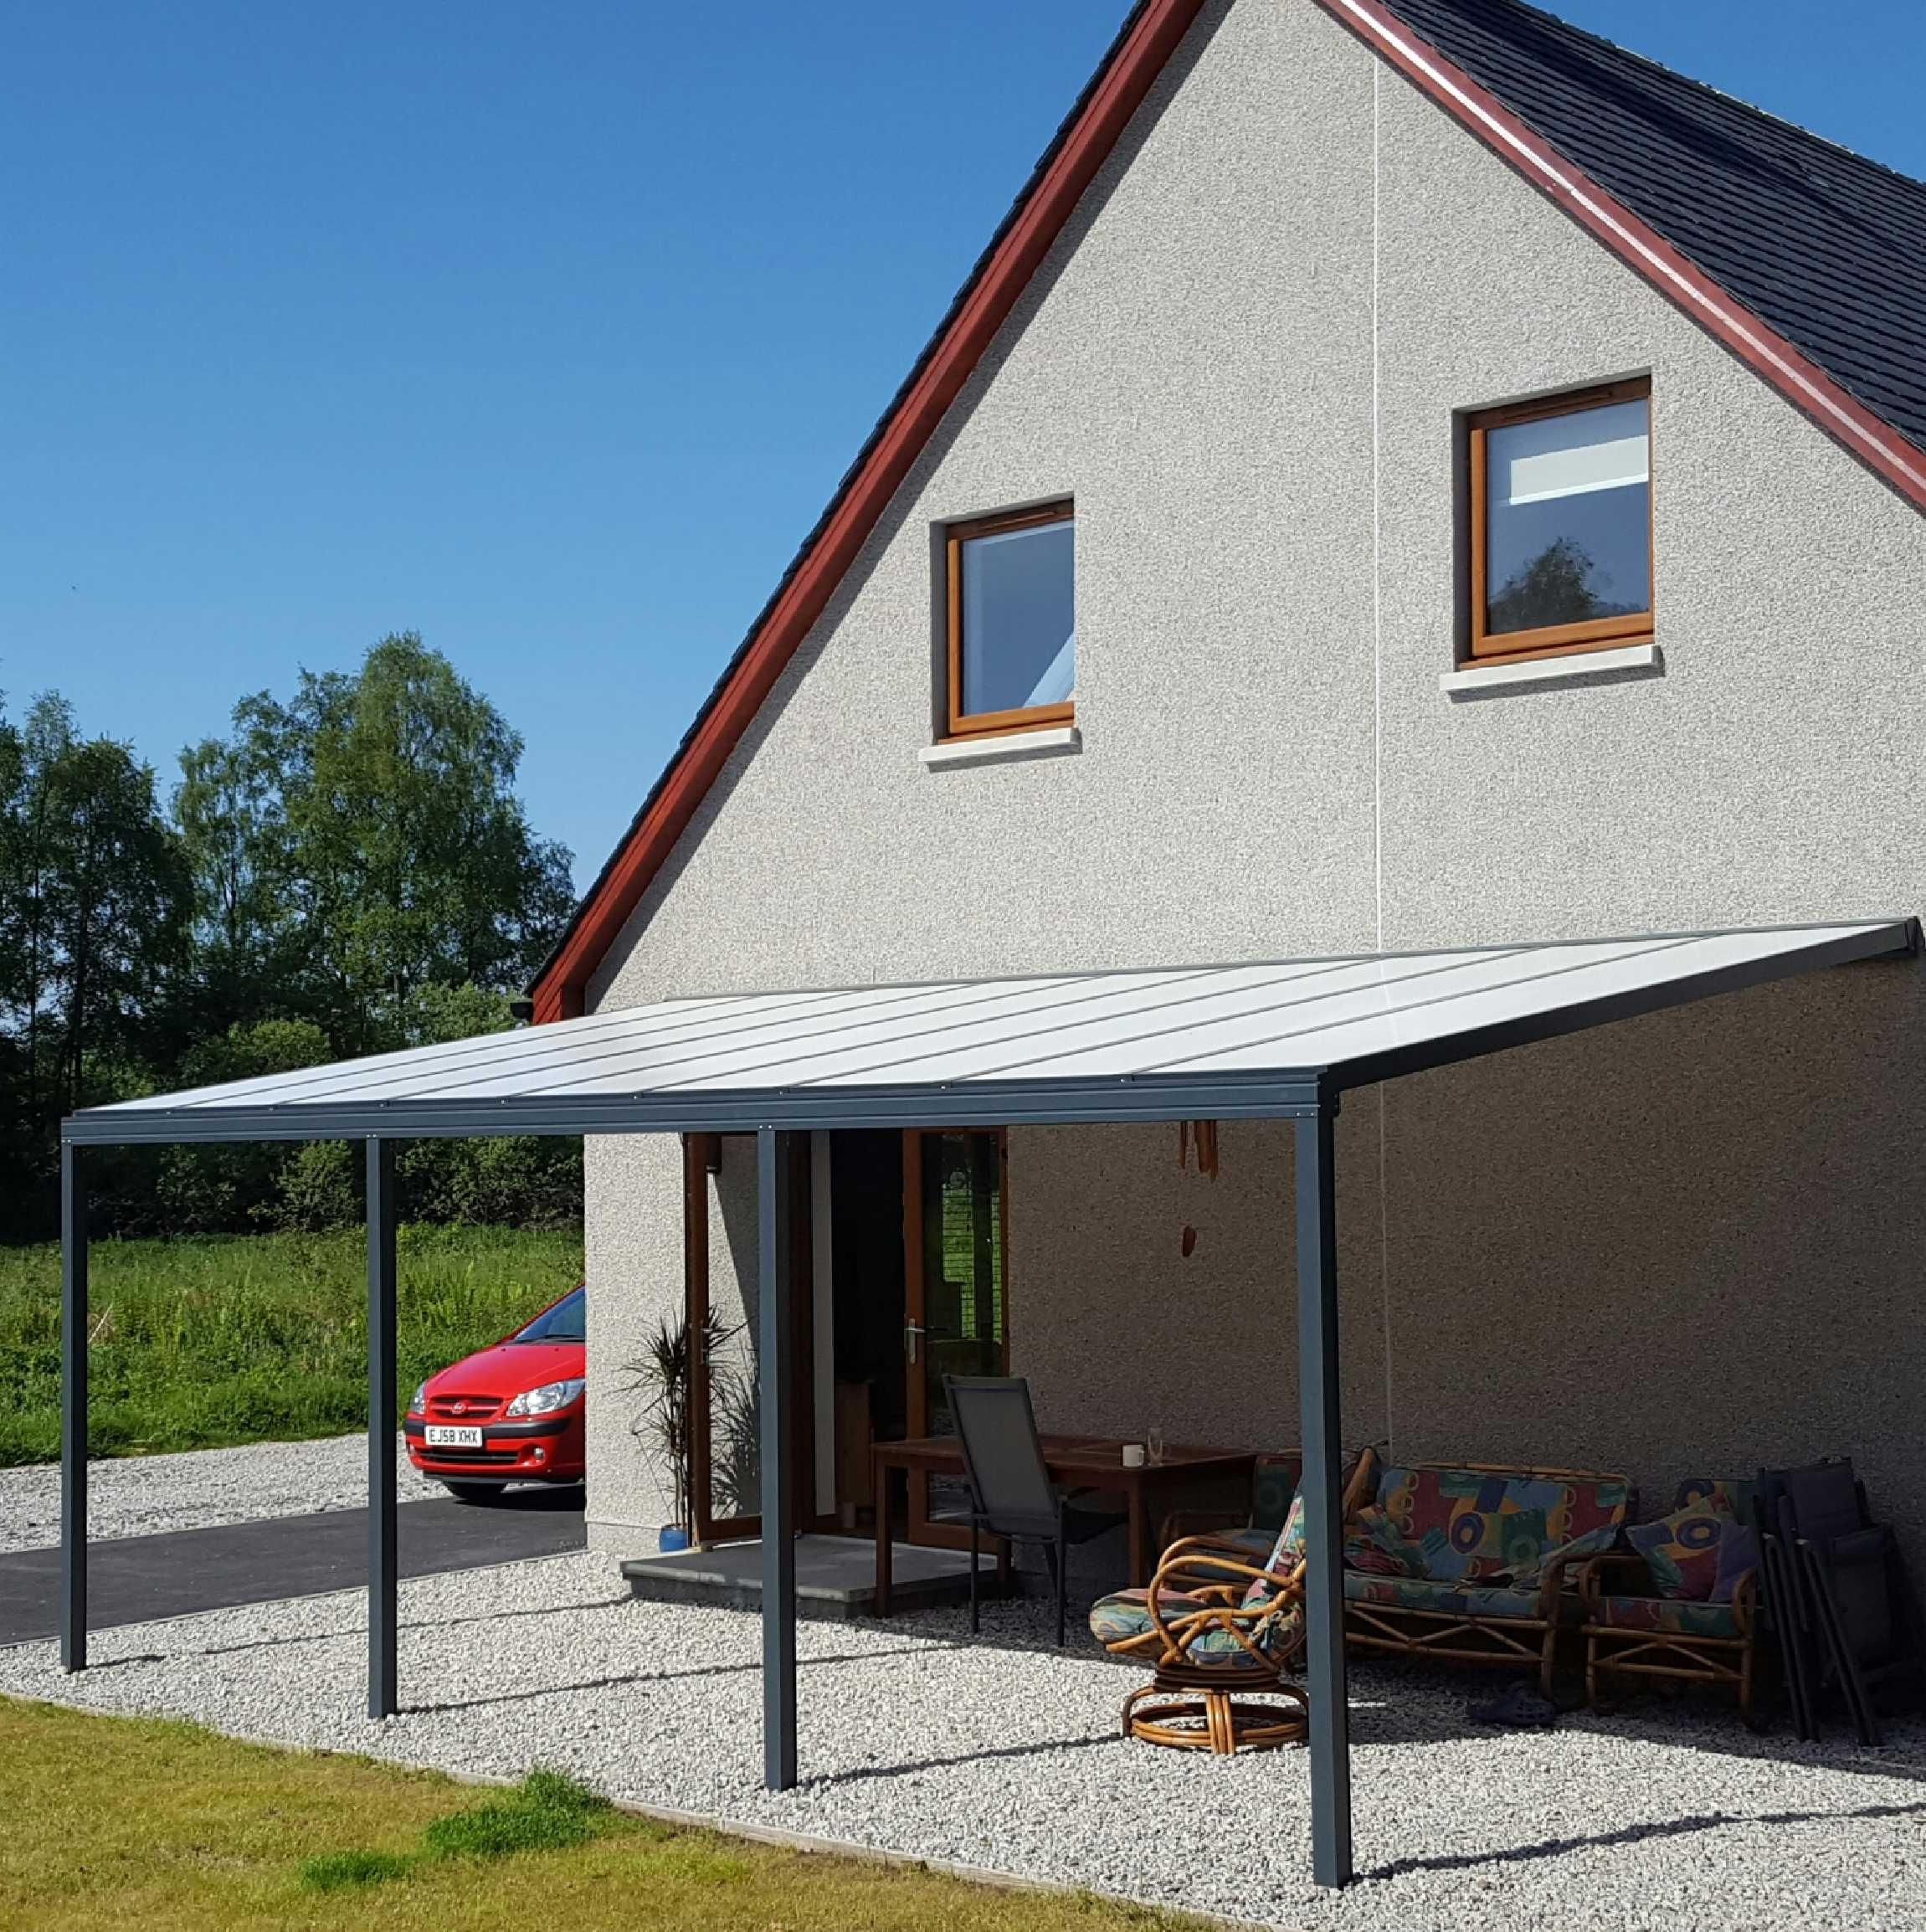 Great selection of Omega Smart Lean-To Canopy, Anthracite Grey, 16mm Polycarbonate Glazing - 2.1m (W) x 2.0m (P), (2) Supporting Posts